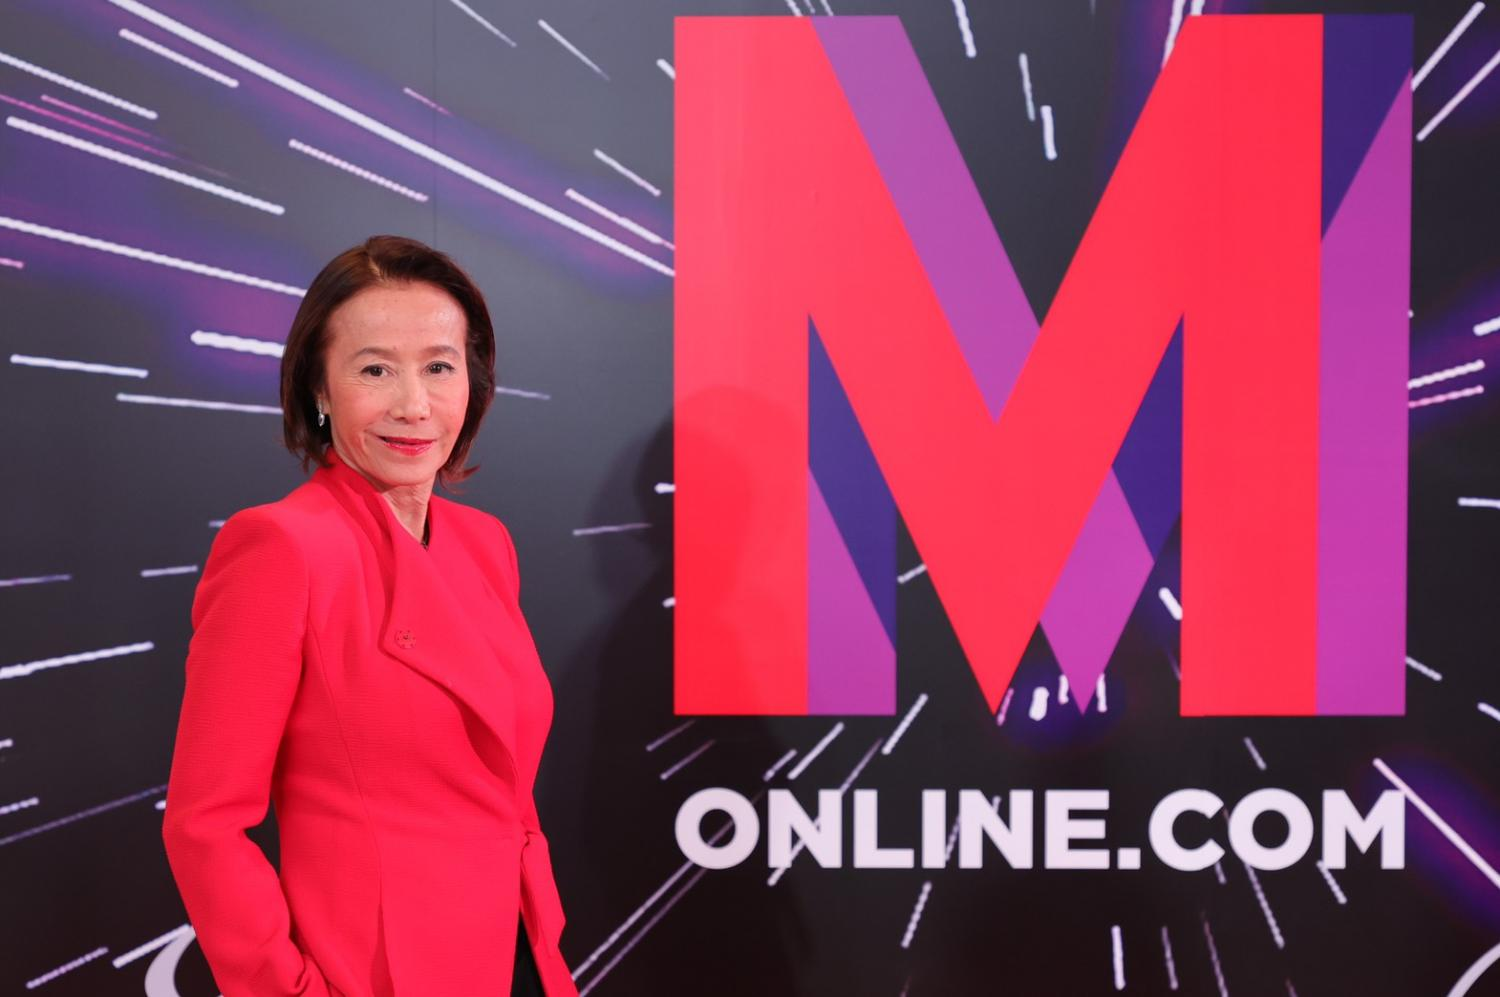 Ms Supaluck says the company's move towards omnichannel is part of a strategic plan to grow sustainably.